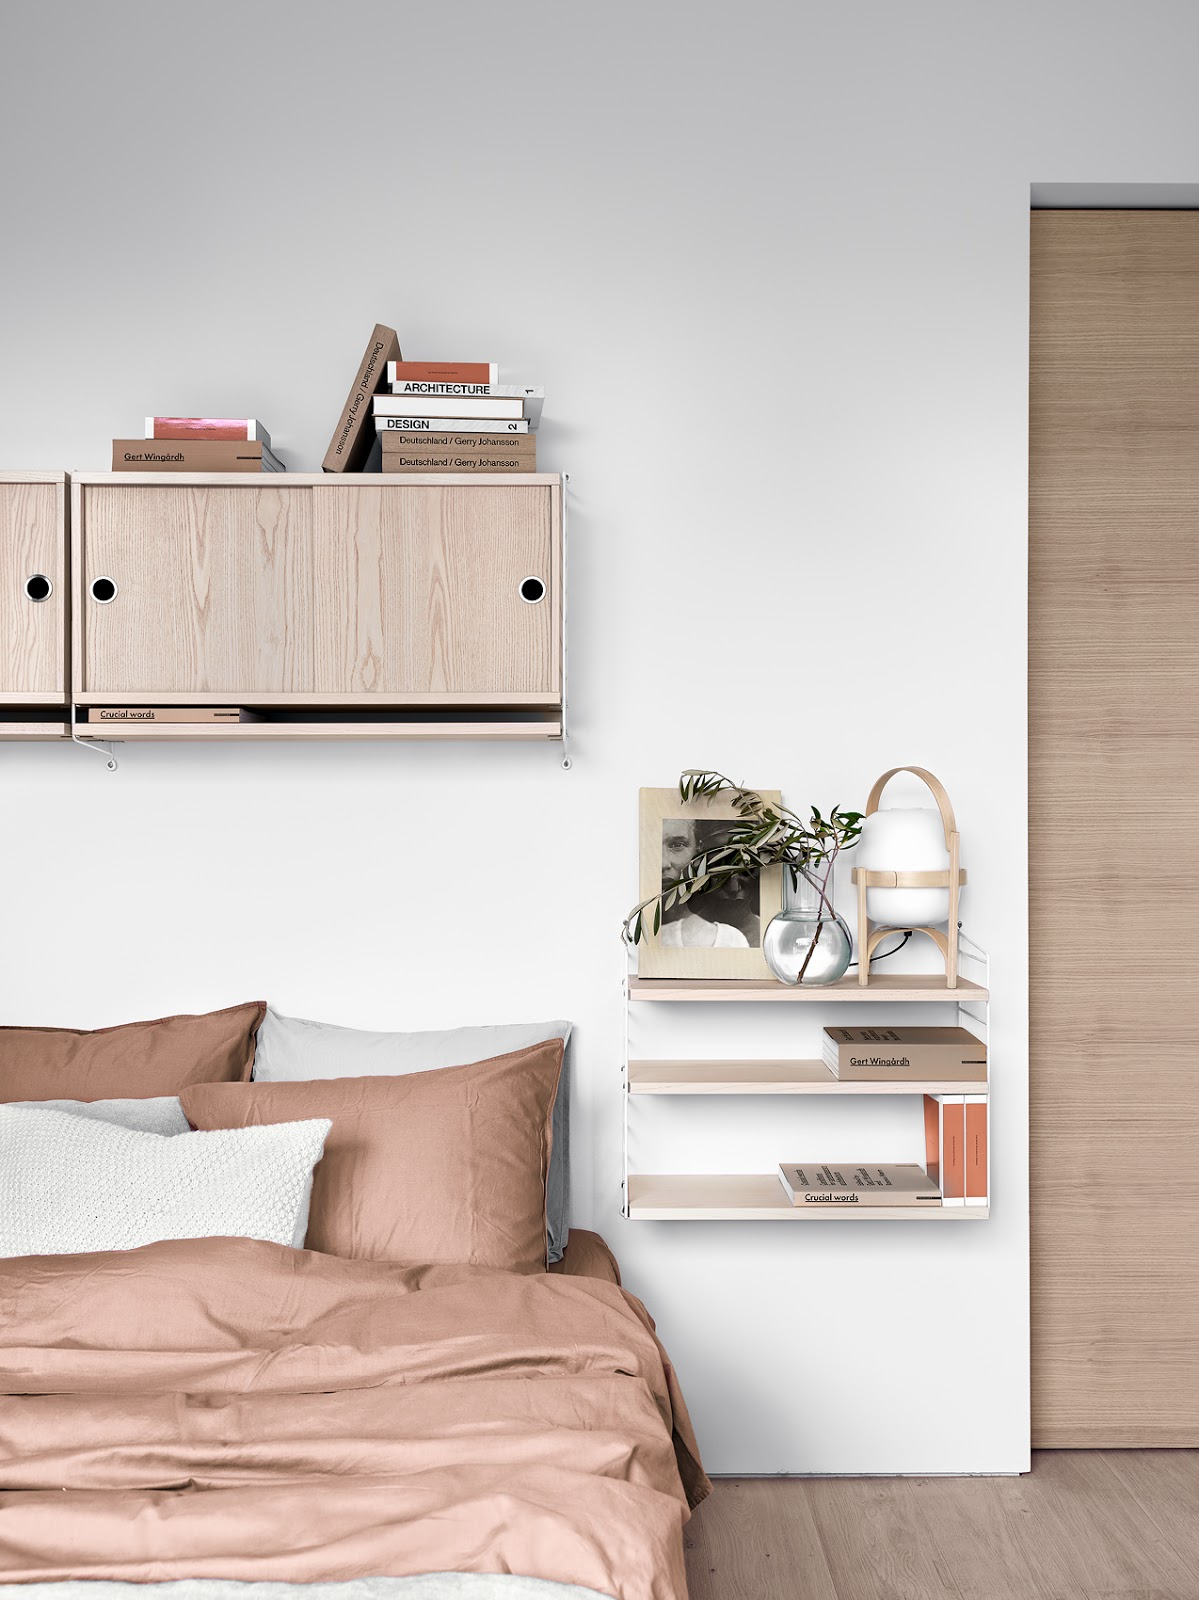 A bedroom in pink shows off what's new from String